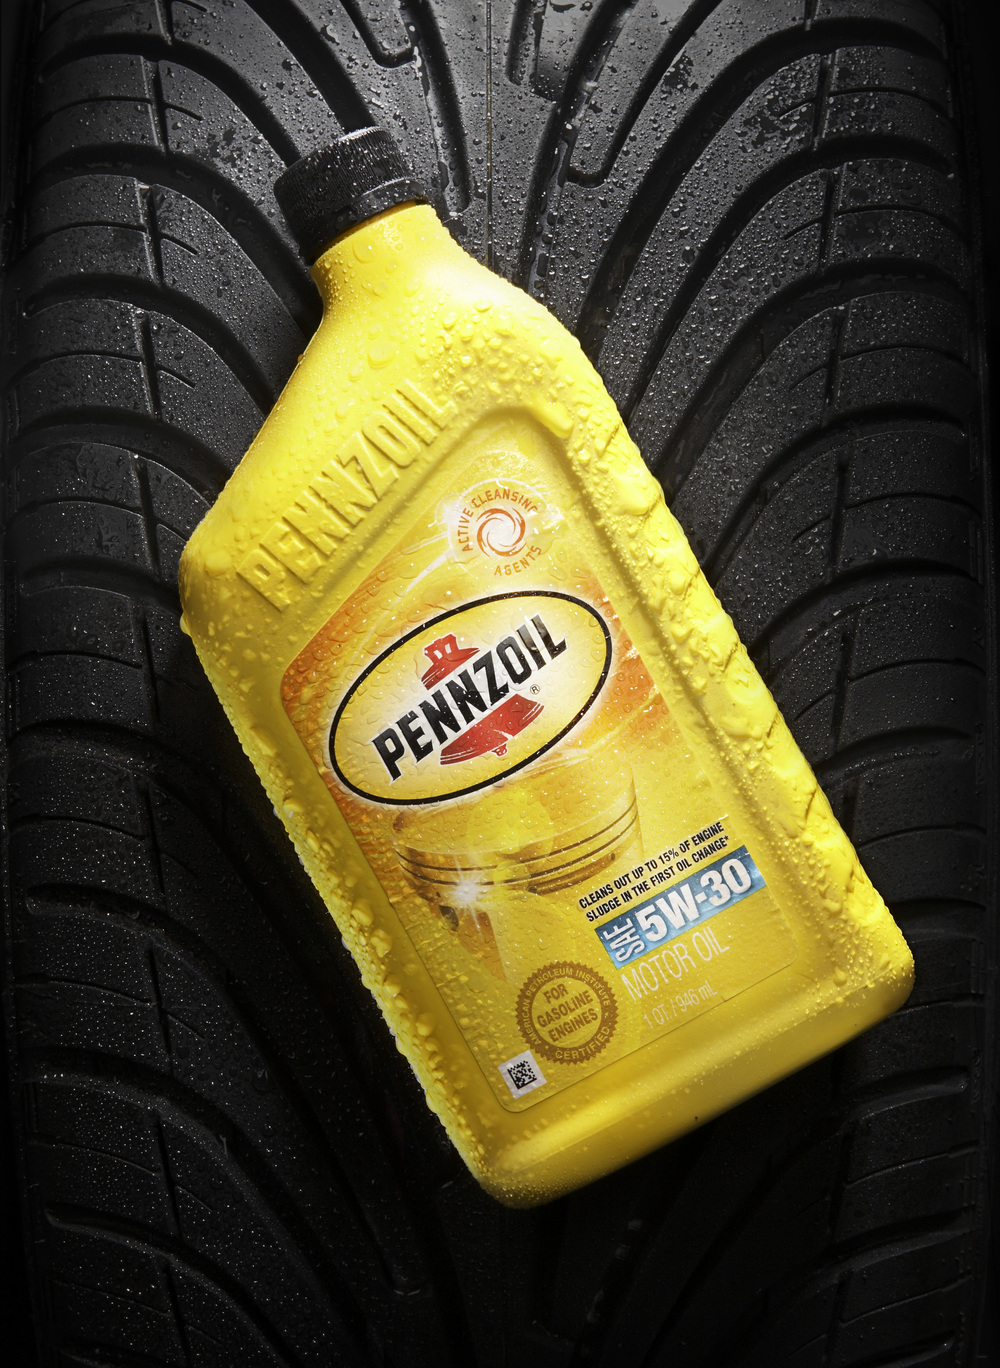 Pennzoil Product Photograph - Brad Rankin Studio